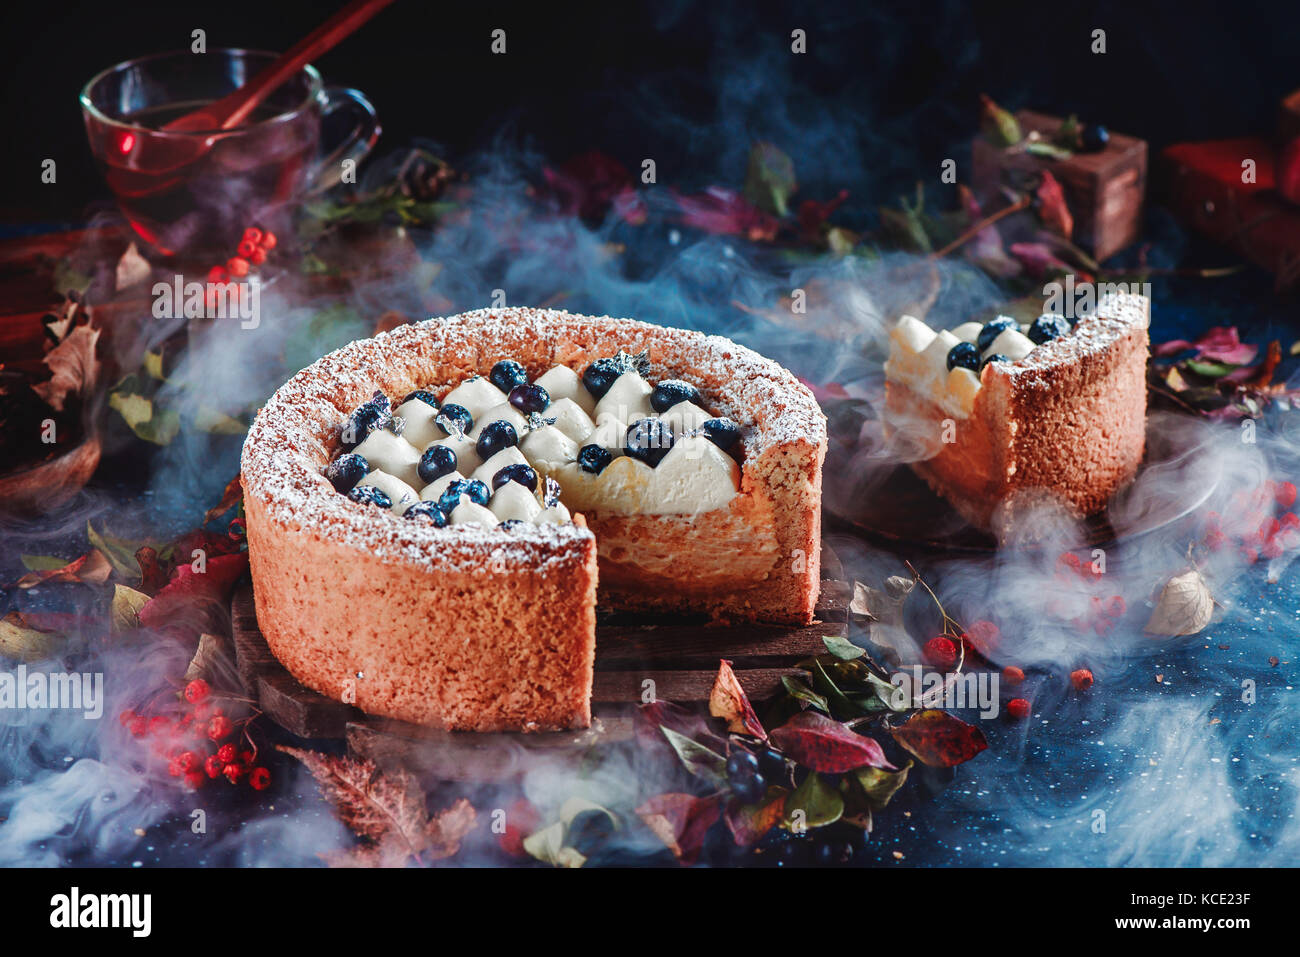 Cut cake with a shortbread crust on a dark background. A piece of cake with whipped cream and blueberries. Traditional - Stock Image